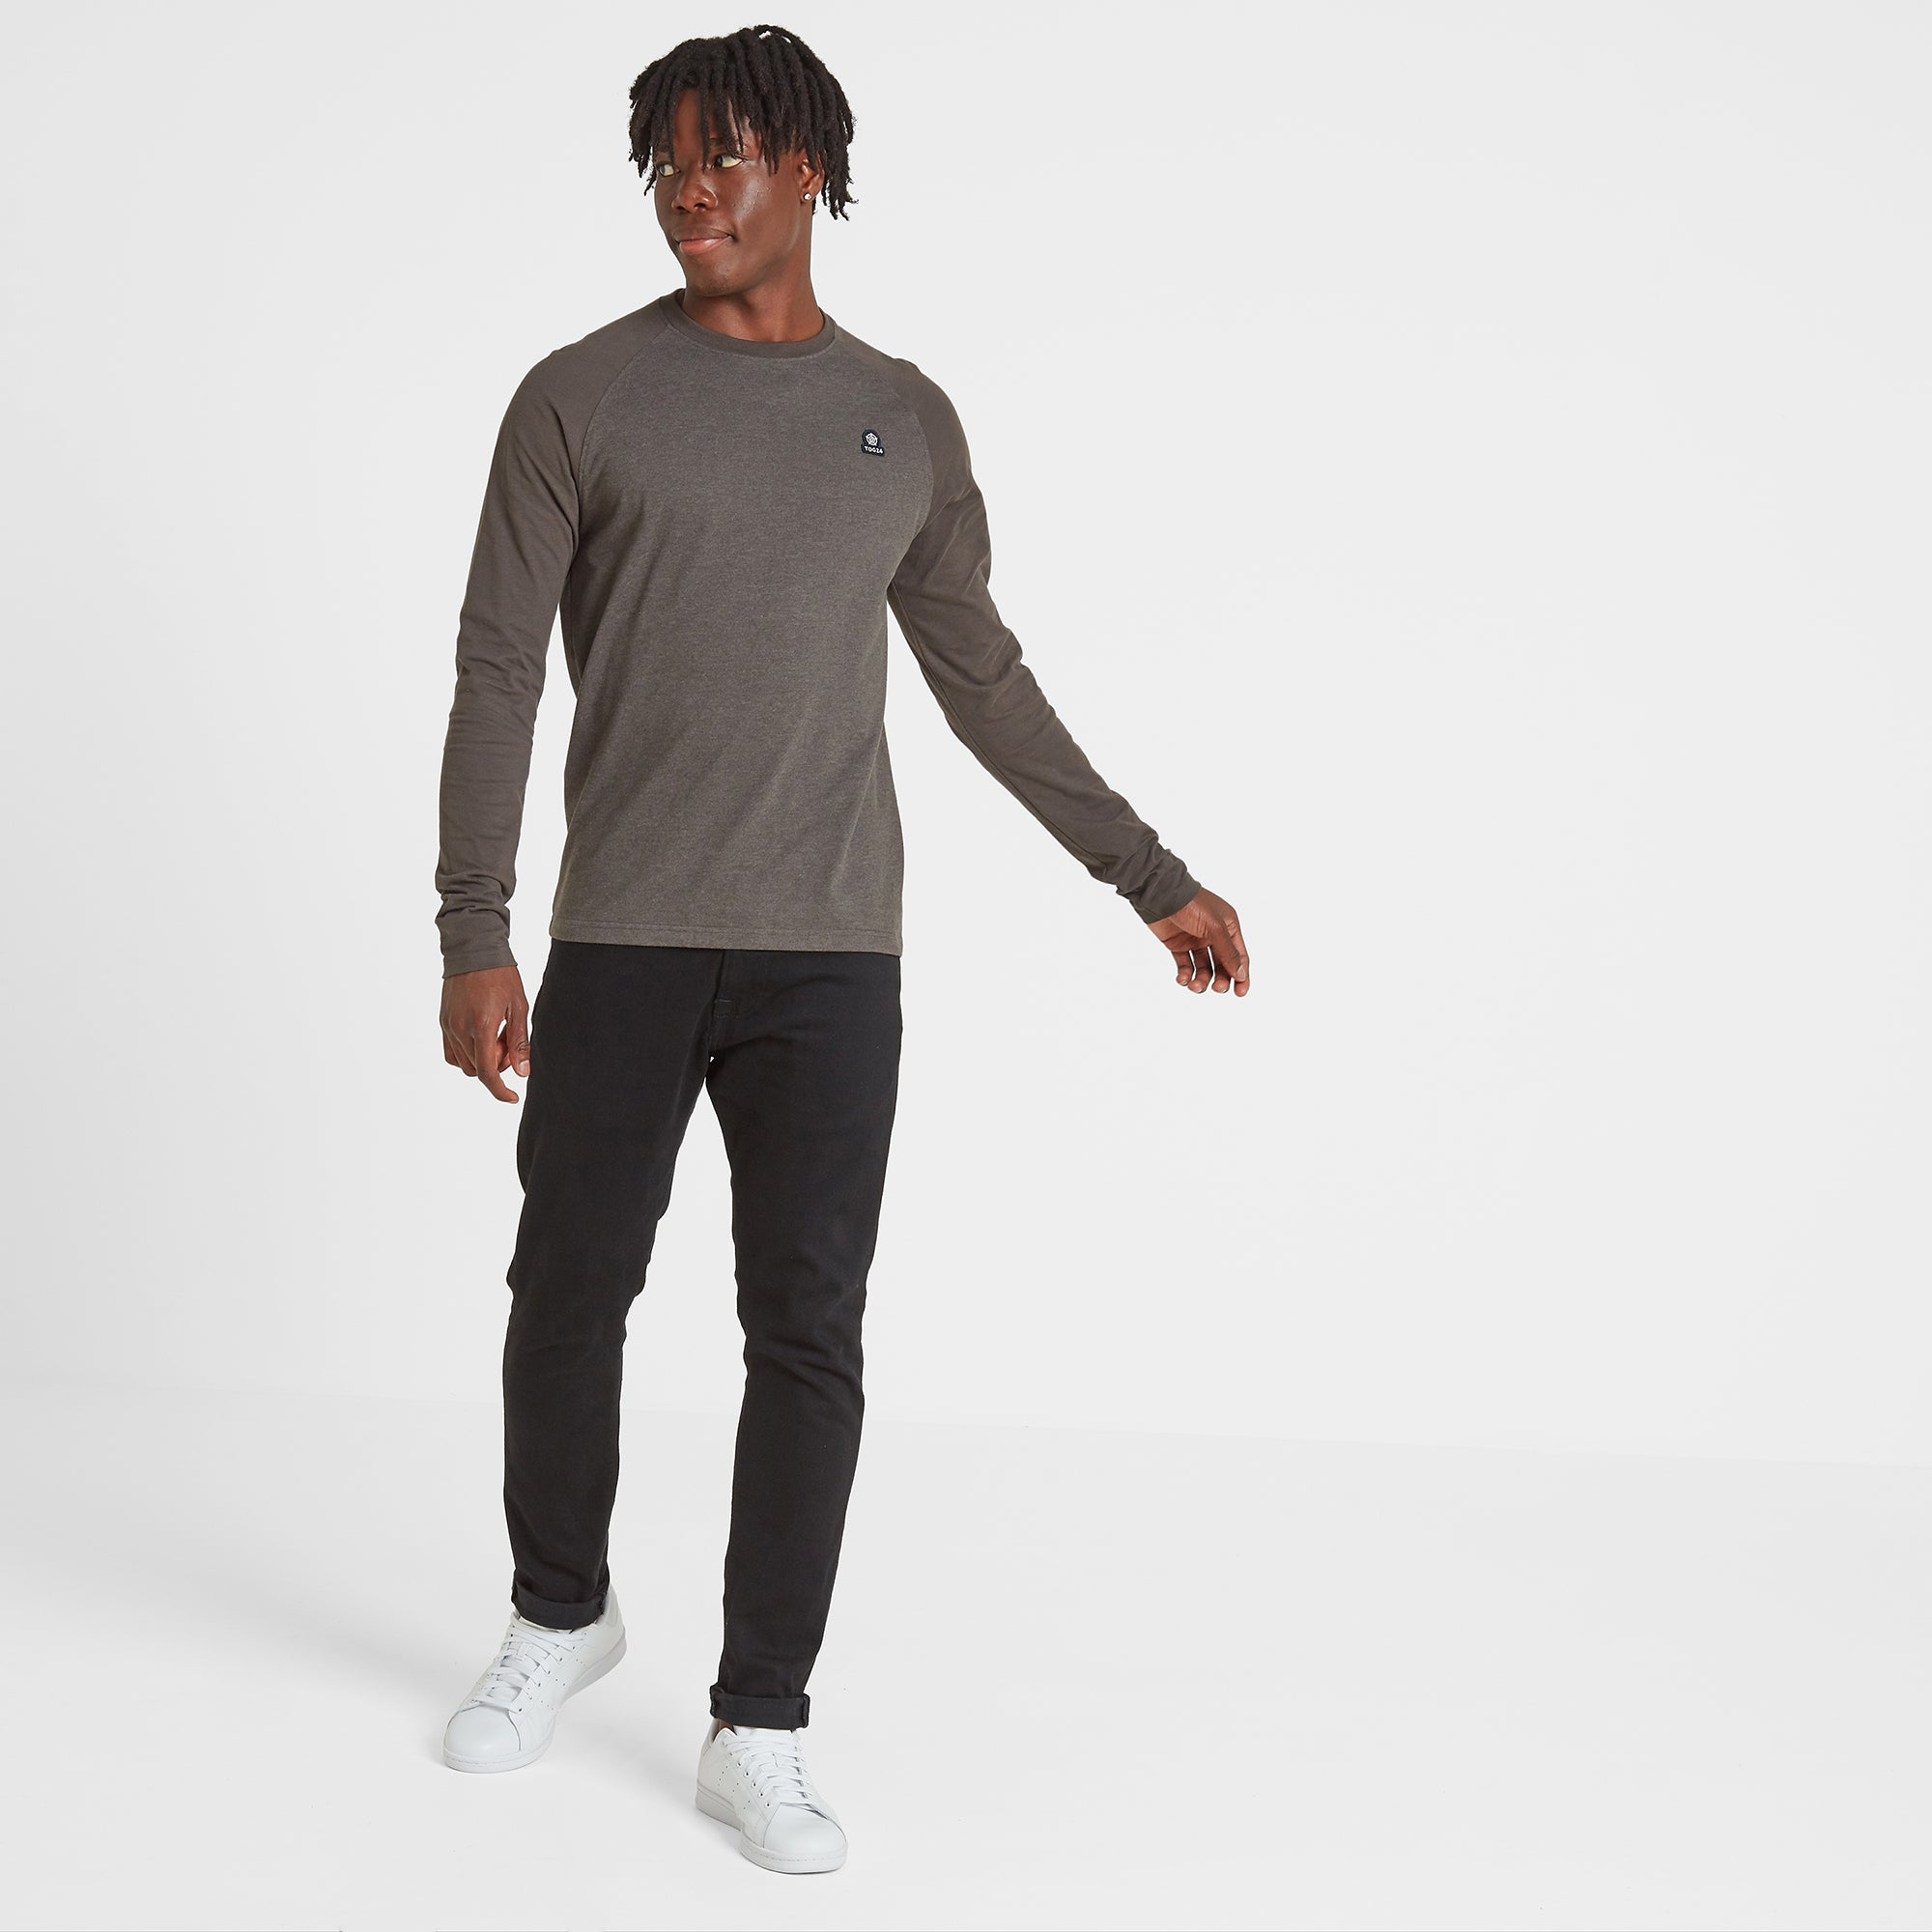 Haxby Mens Long Sleeve Raglan T-Shirt - Khaki Marl/Khaki